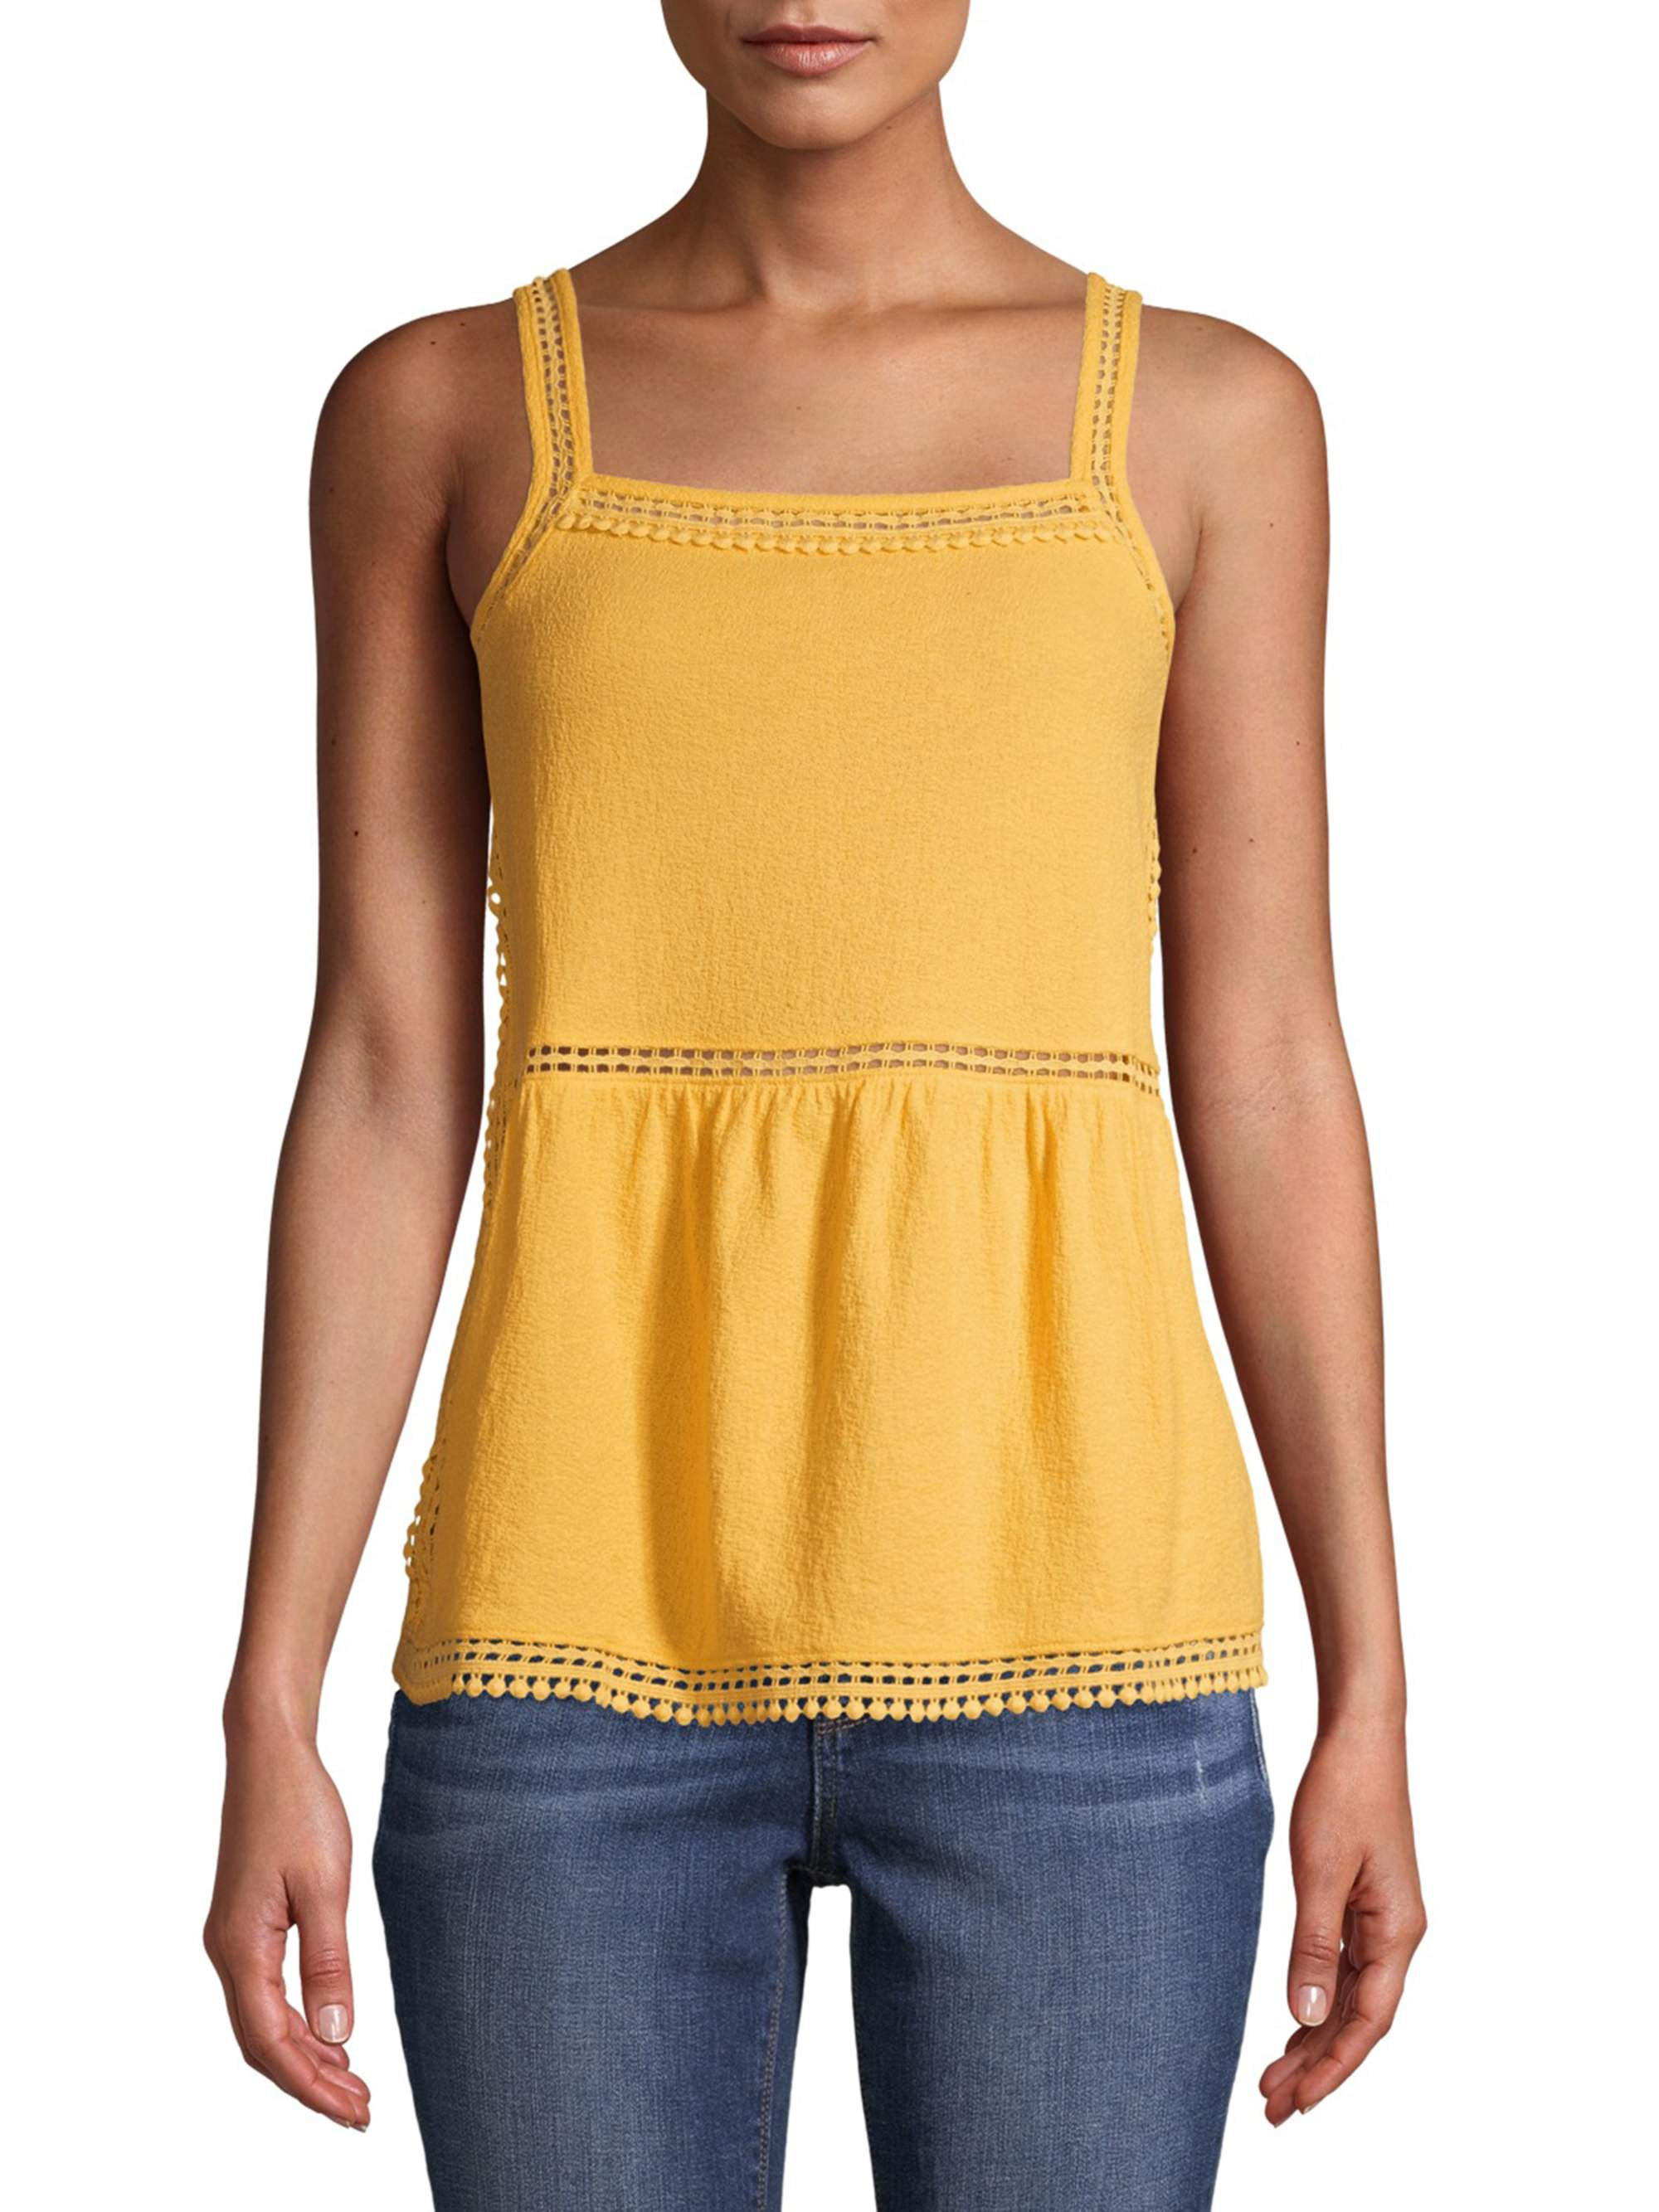 Crafted Kids Girls 2 Piece Jersey Vest Infant Cami Tank Top Crew Neck Cotton